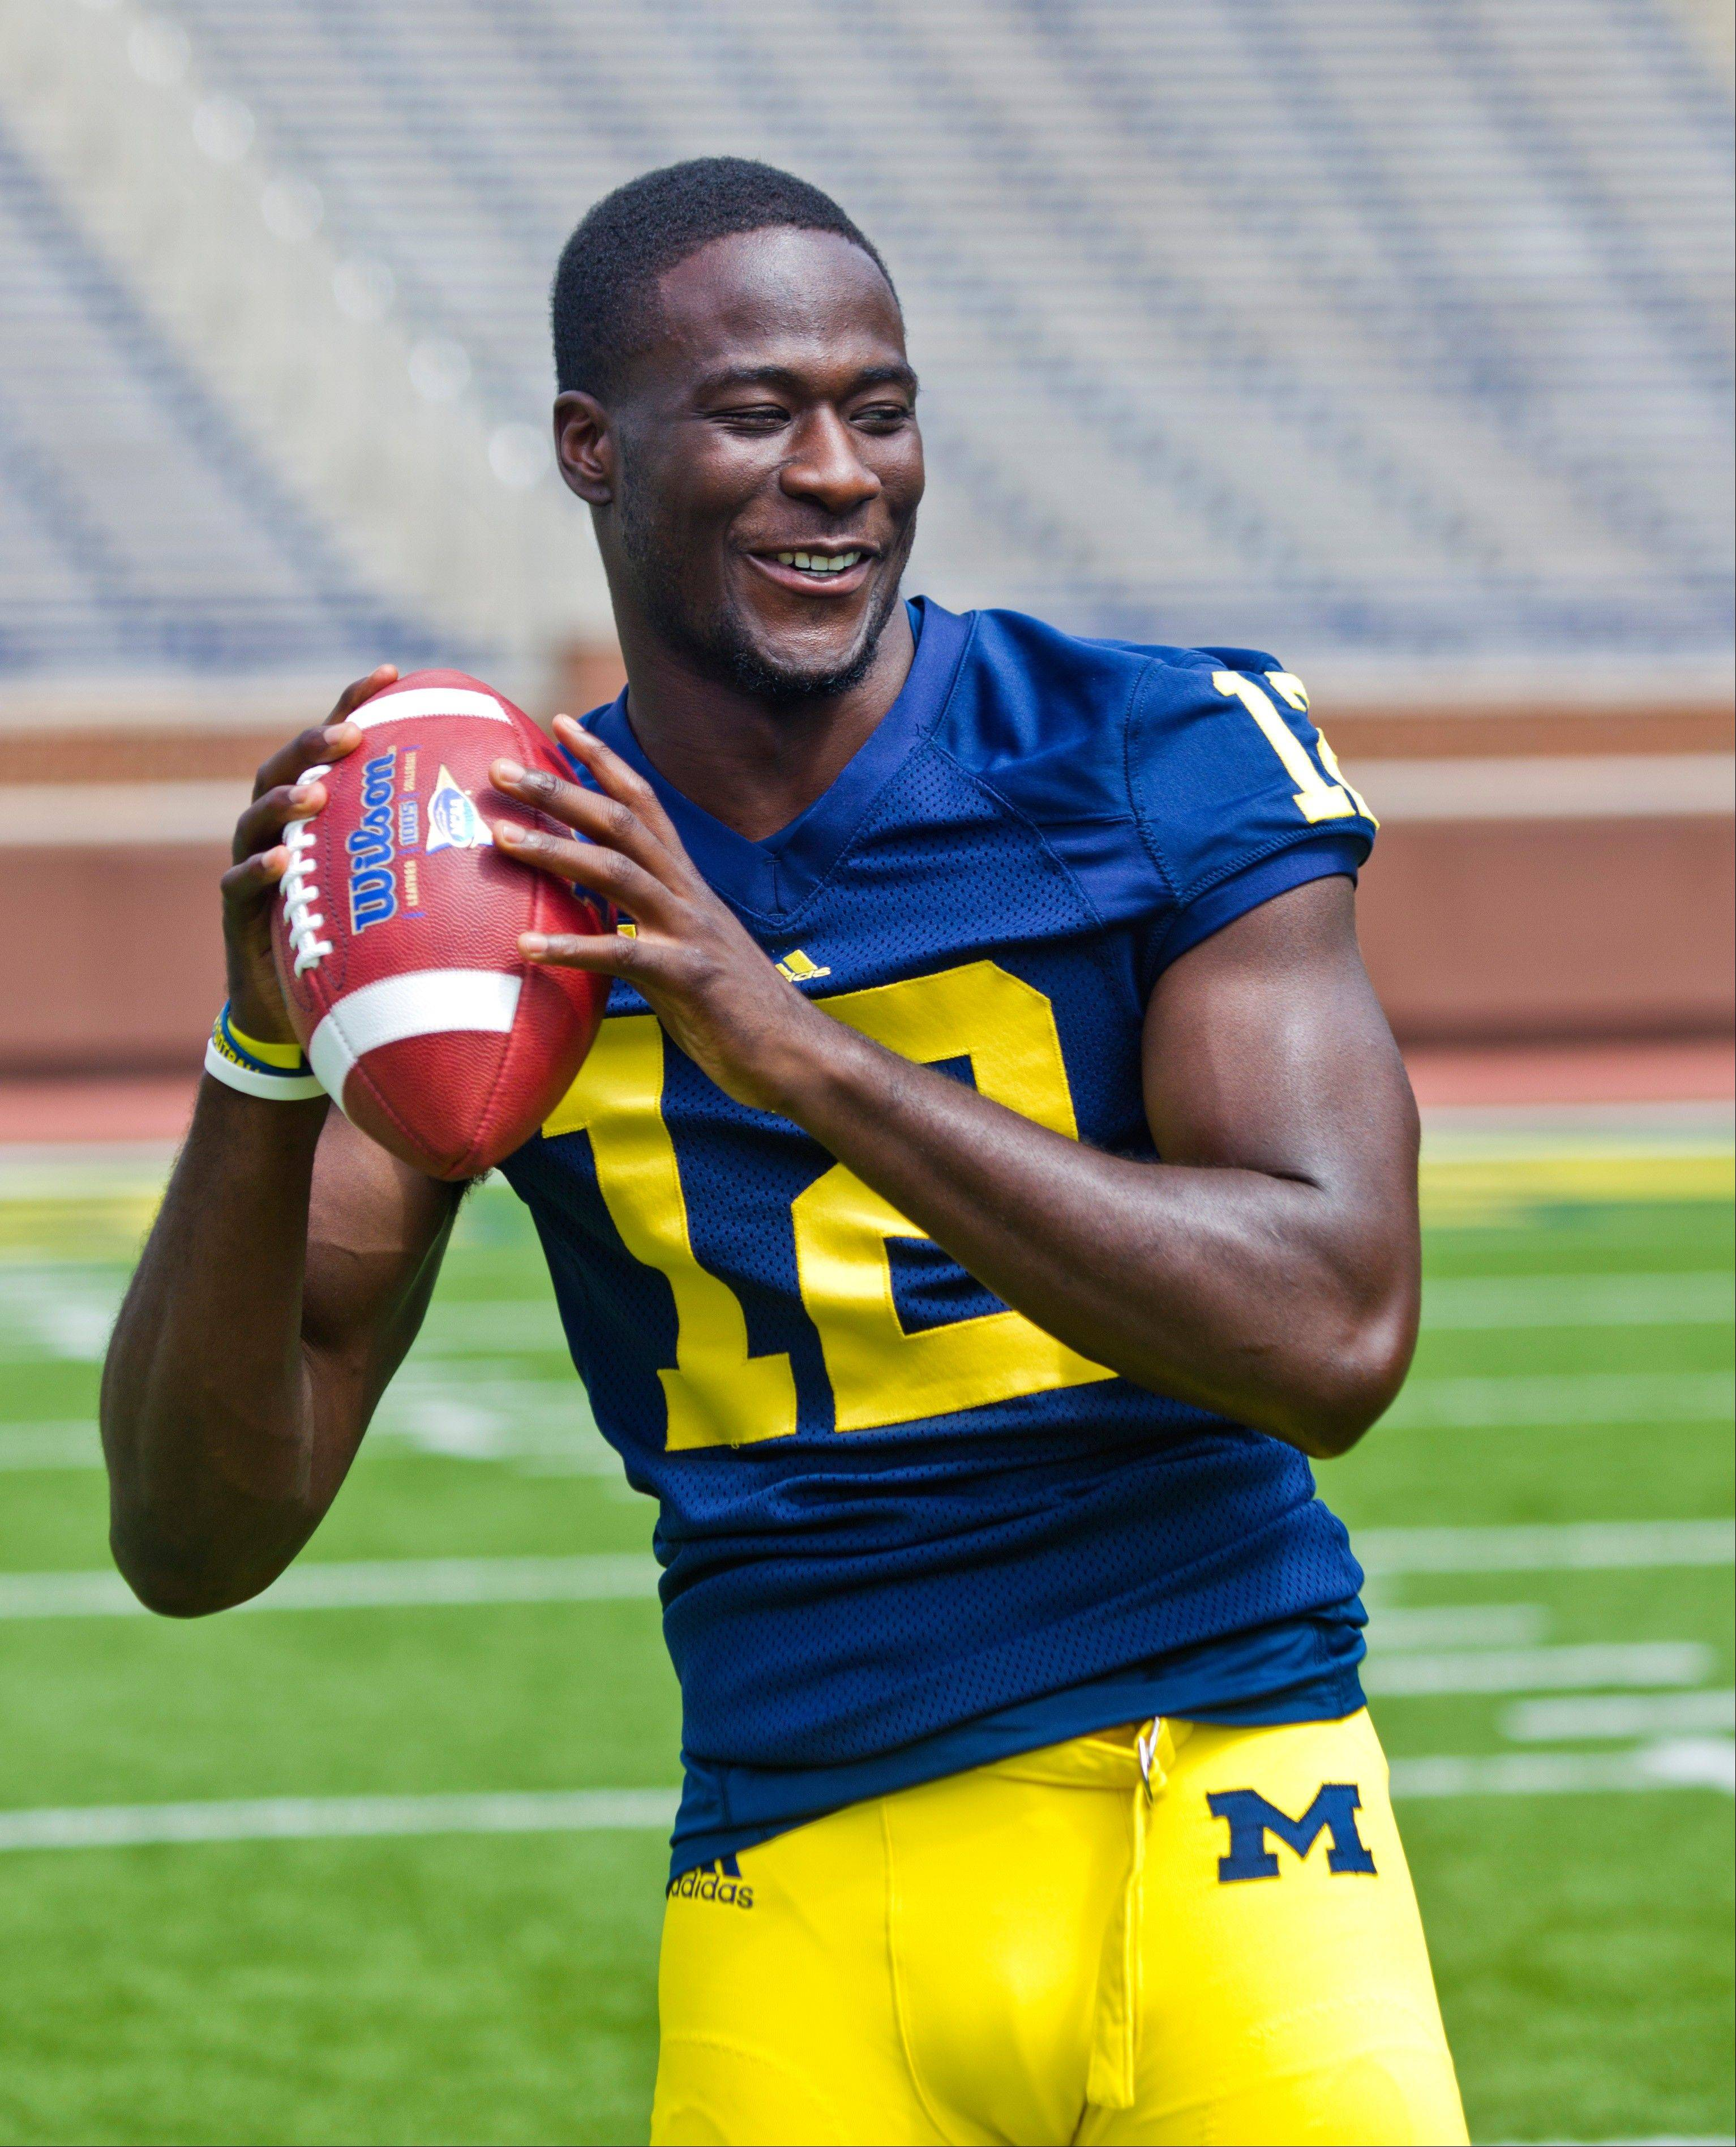 Devin Gardner takes over quarterback for Michigan this season.